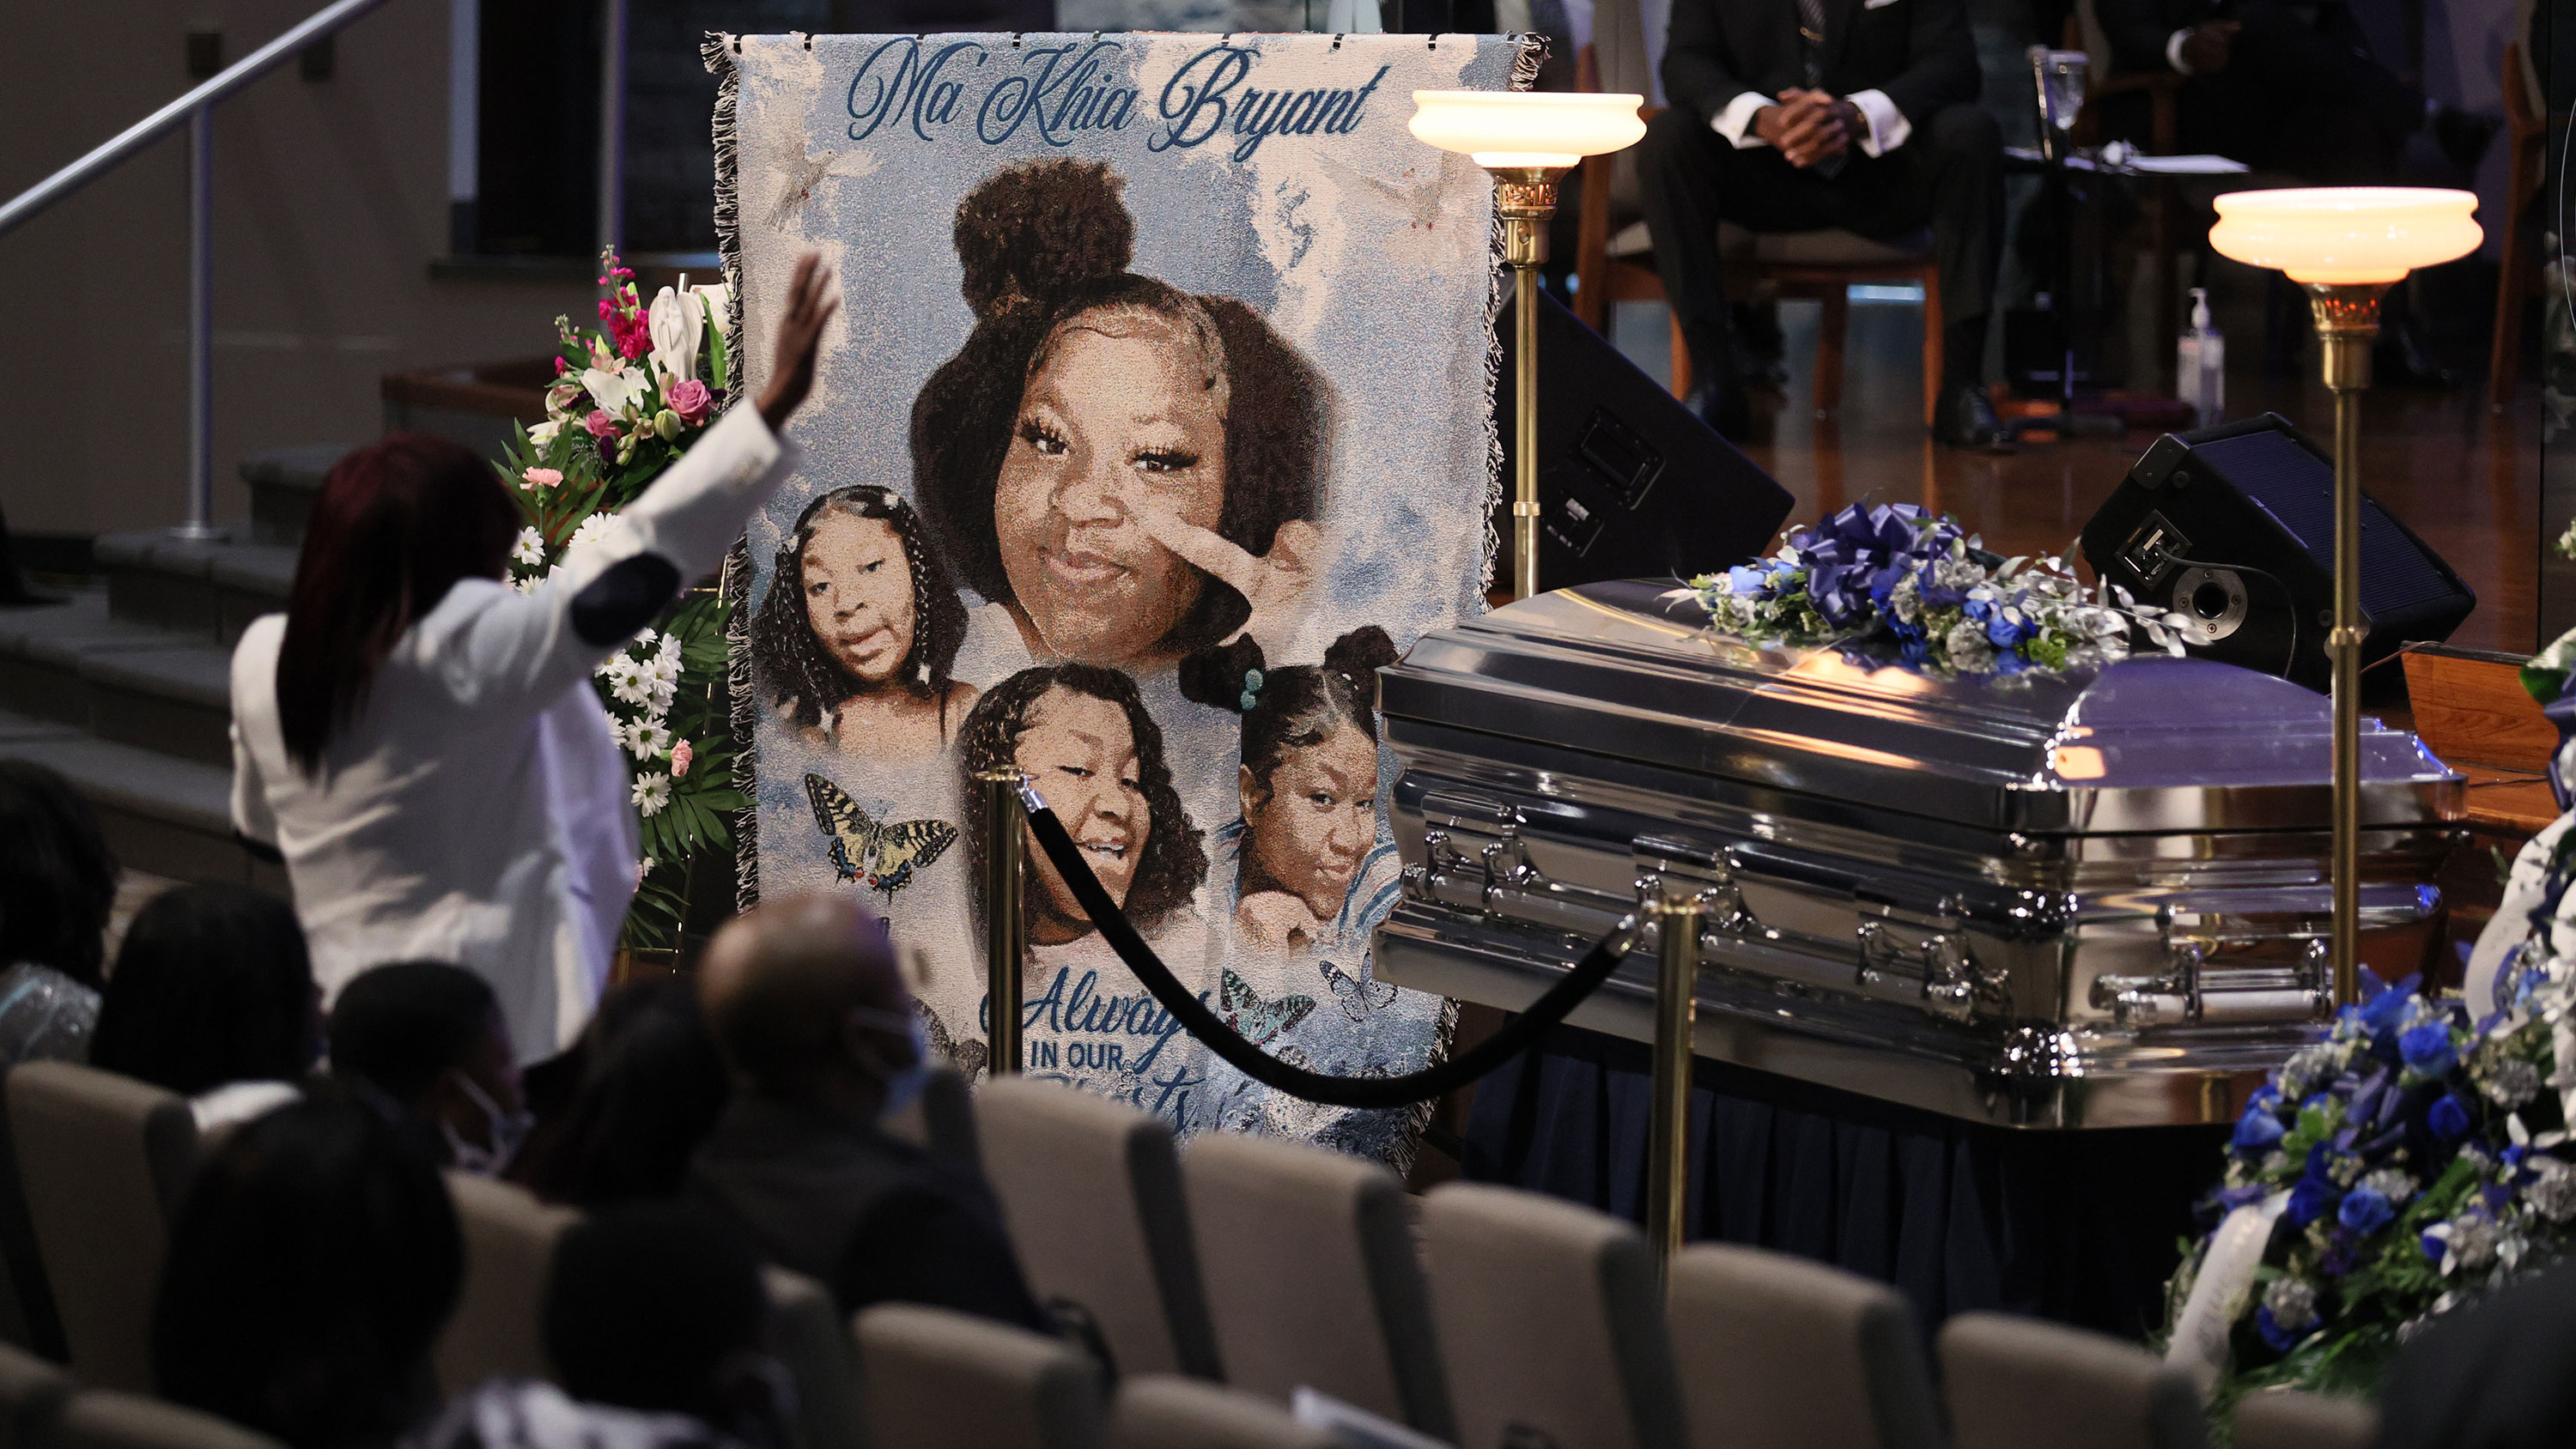 The foster care system is failing Black children and the death of Ma'Khia Bryant is one example, experts and attorney say